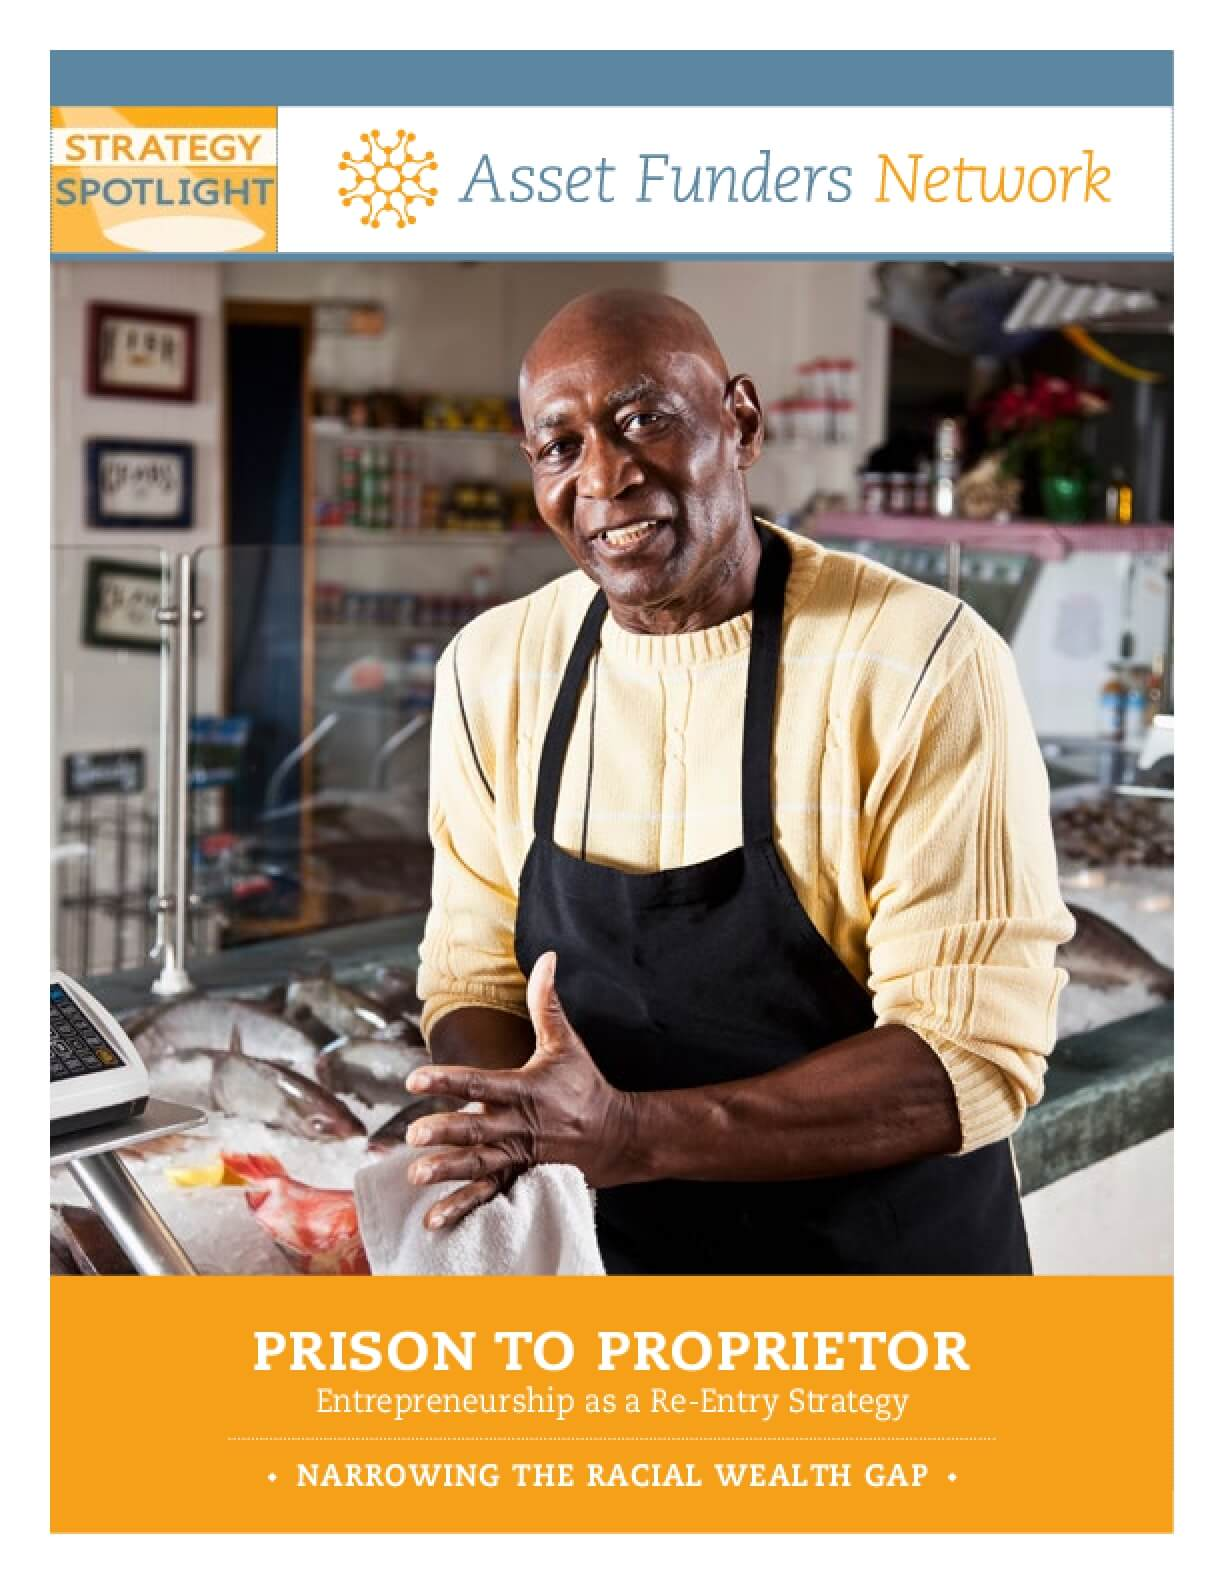 Prison To Proprietor: Entrepreneurship as a Re-Entry Strategy - Narrowing the Racial Wealth Gap